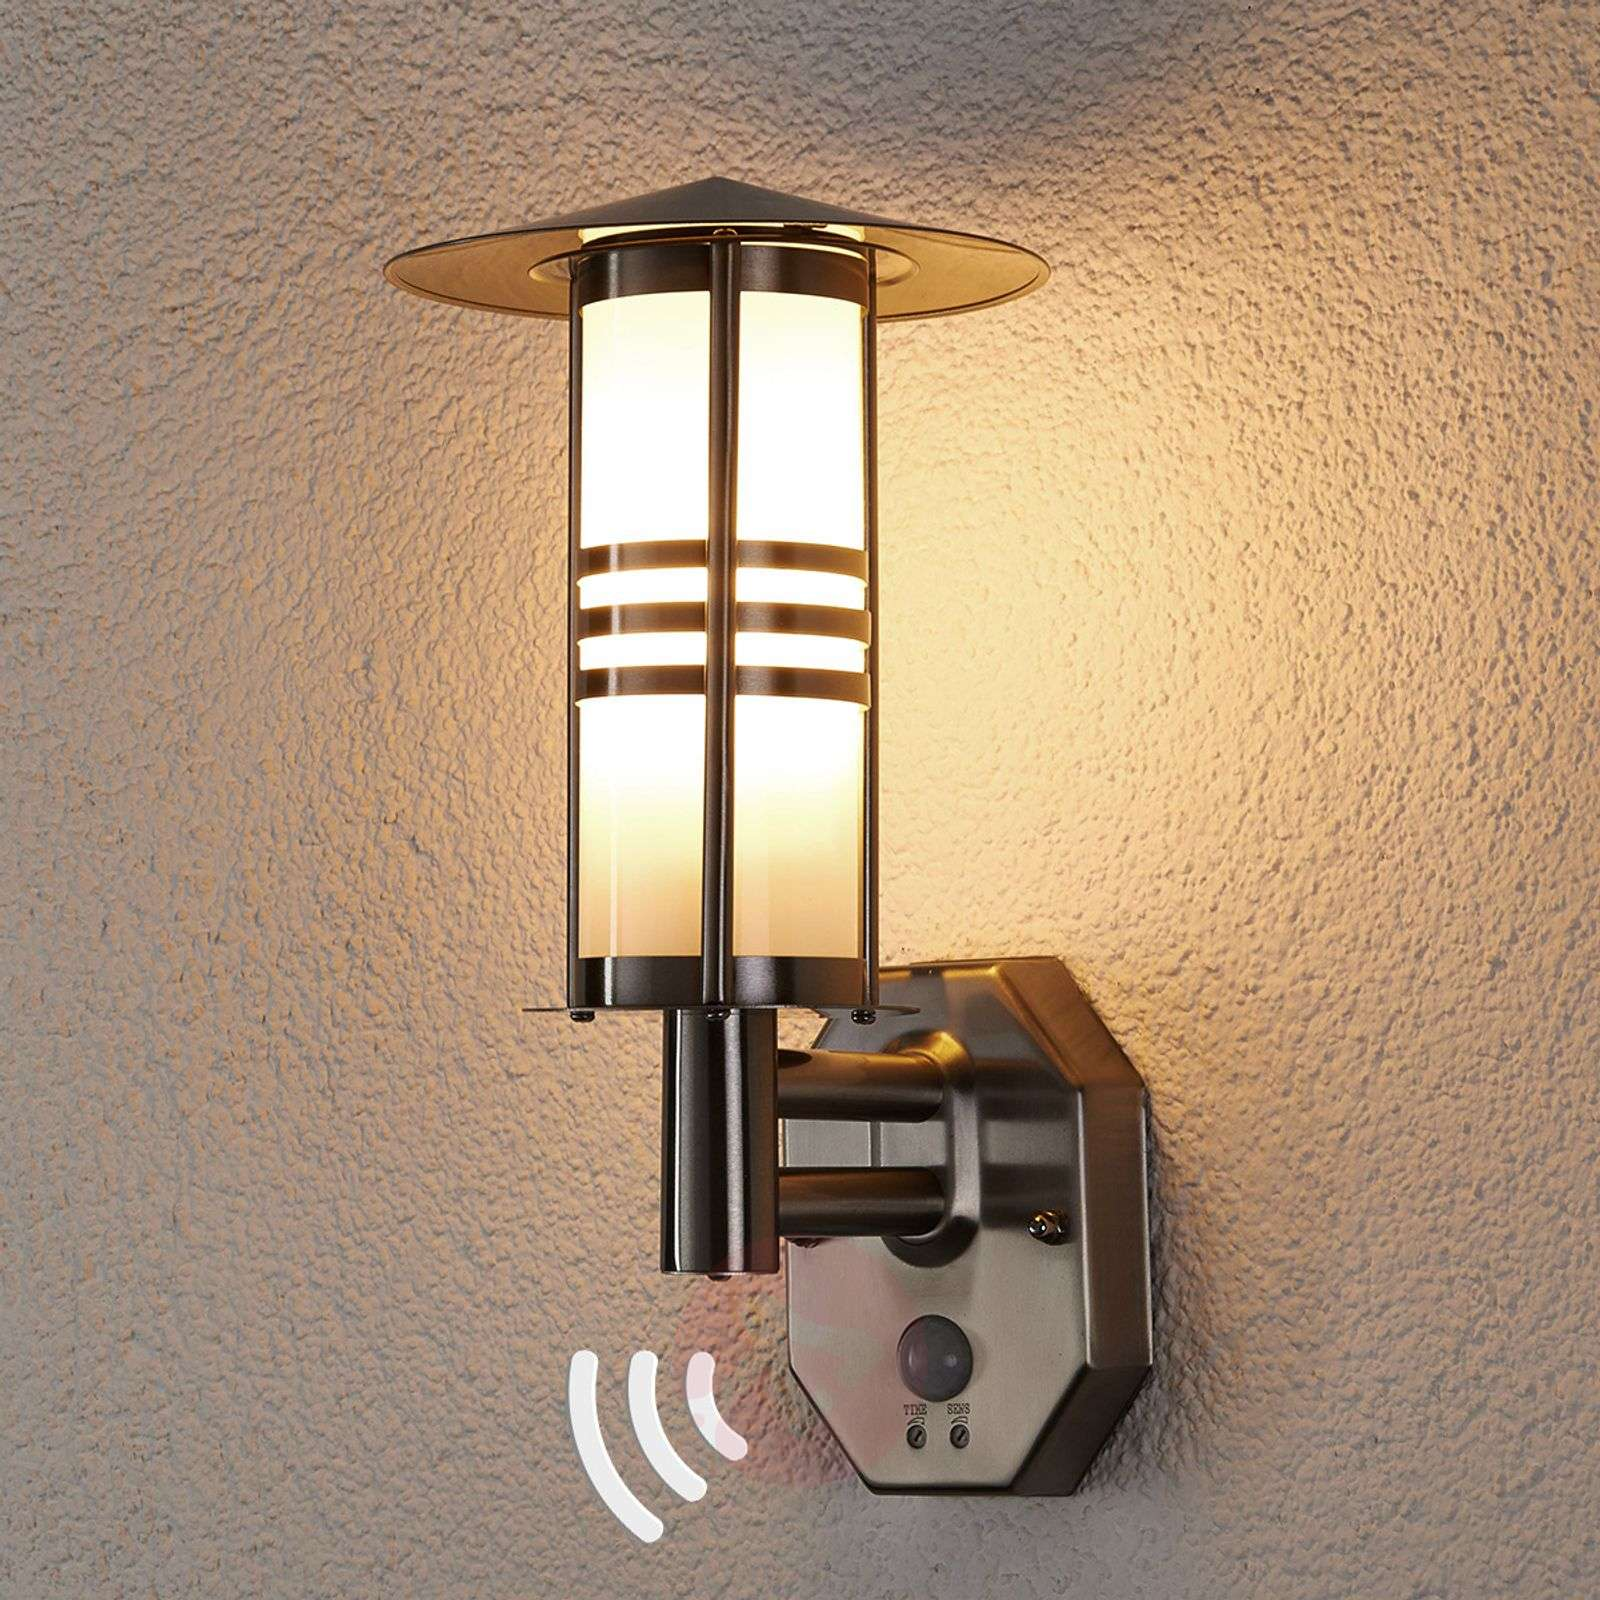 Led Outdoor Wall Light Lanea With Motion Sensor - Outdoor Designs